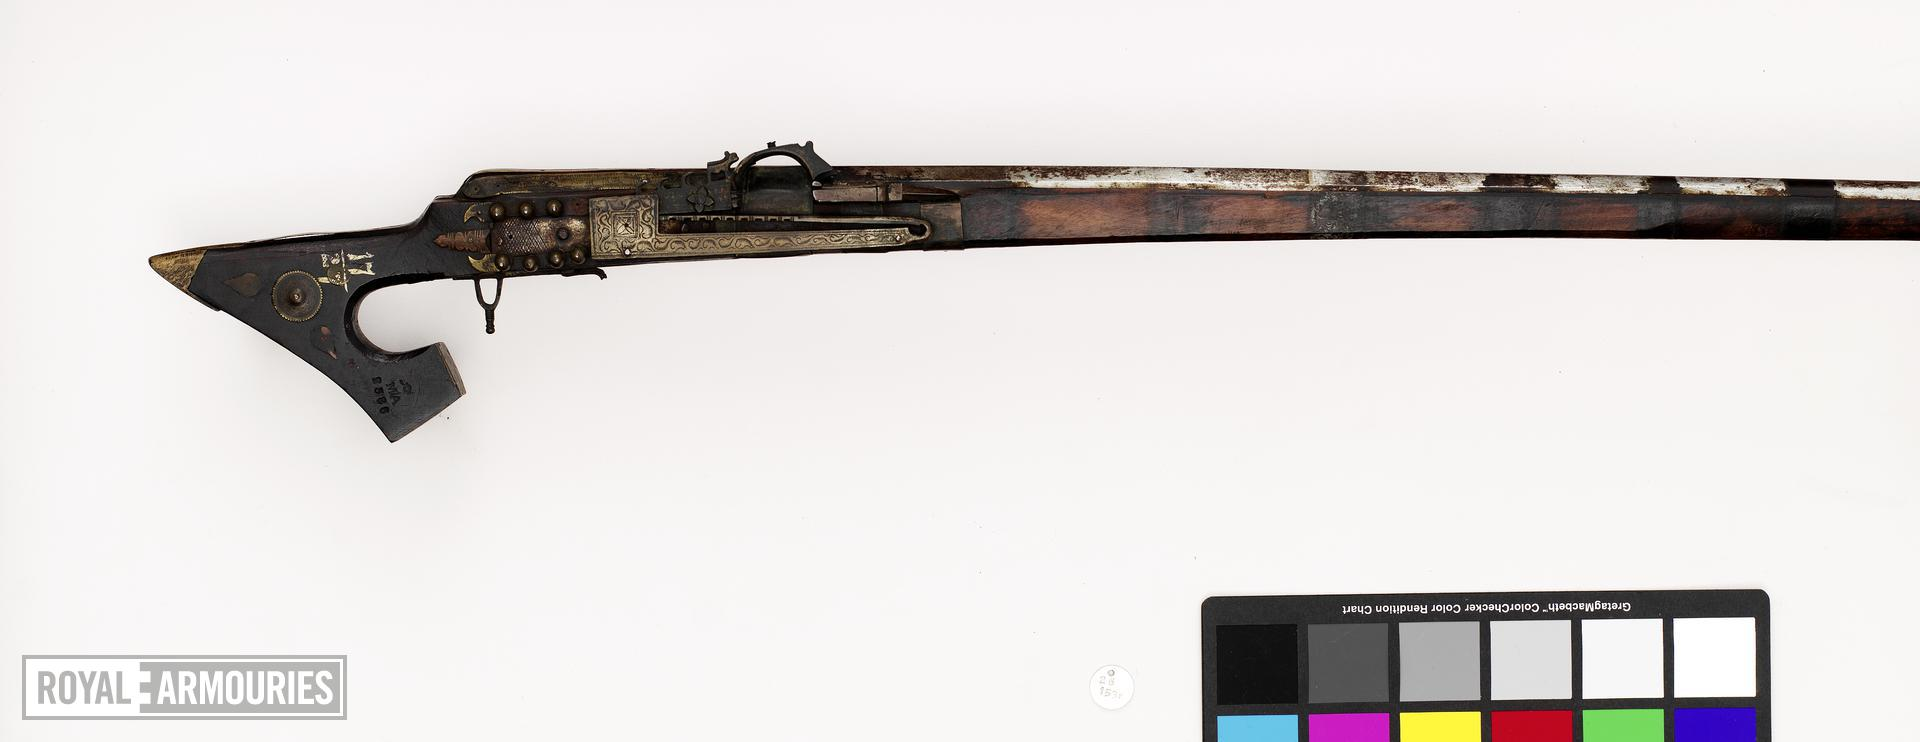 Matchlock musket with angled butt